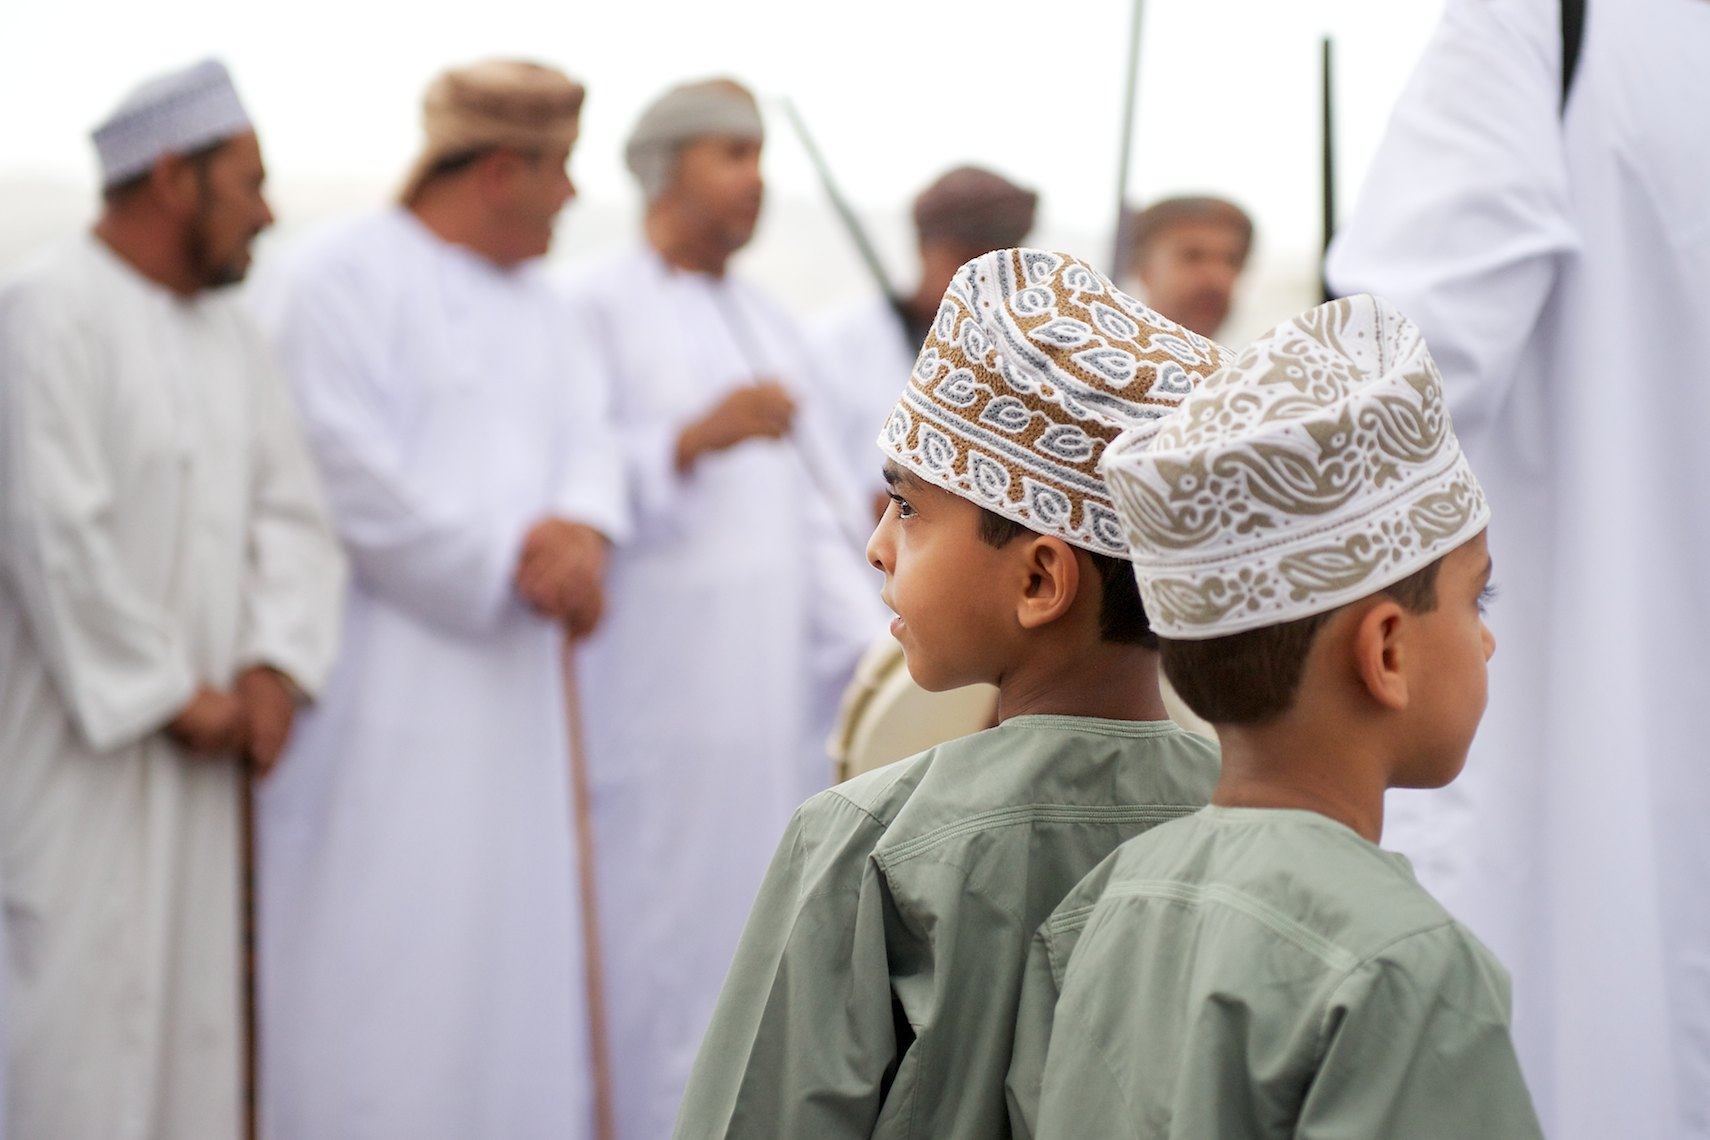 Oman Nizwa Learning from Elders